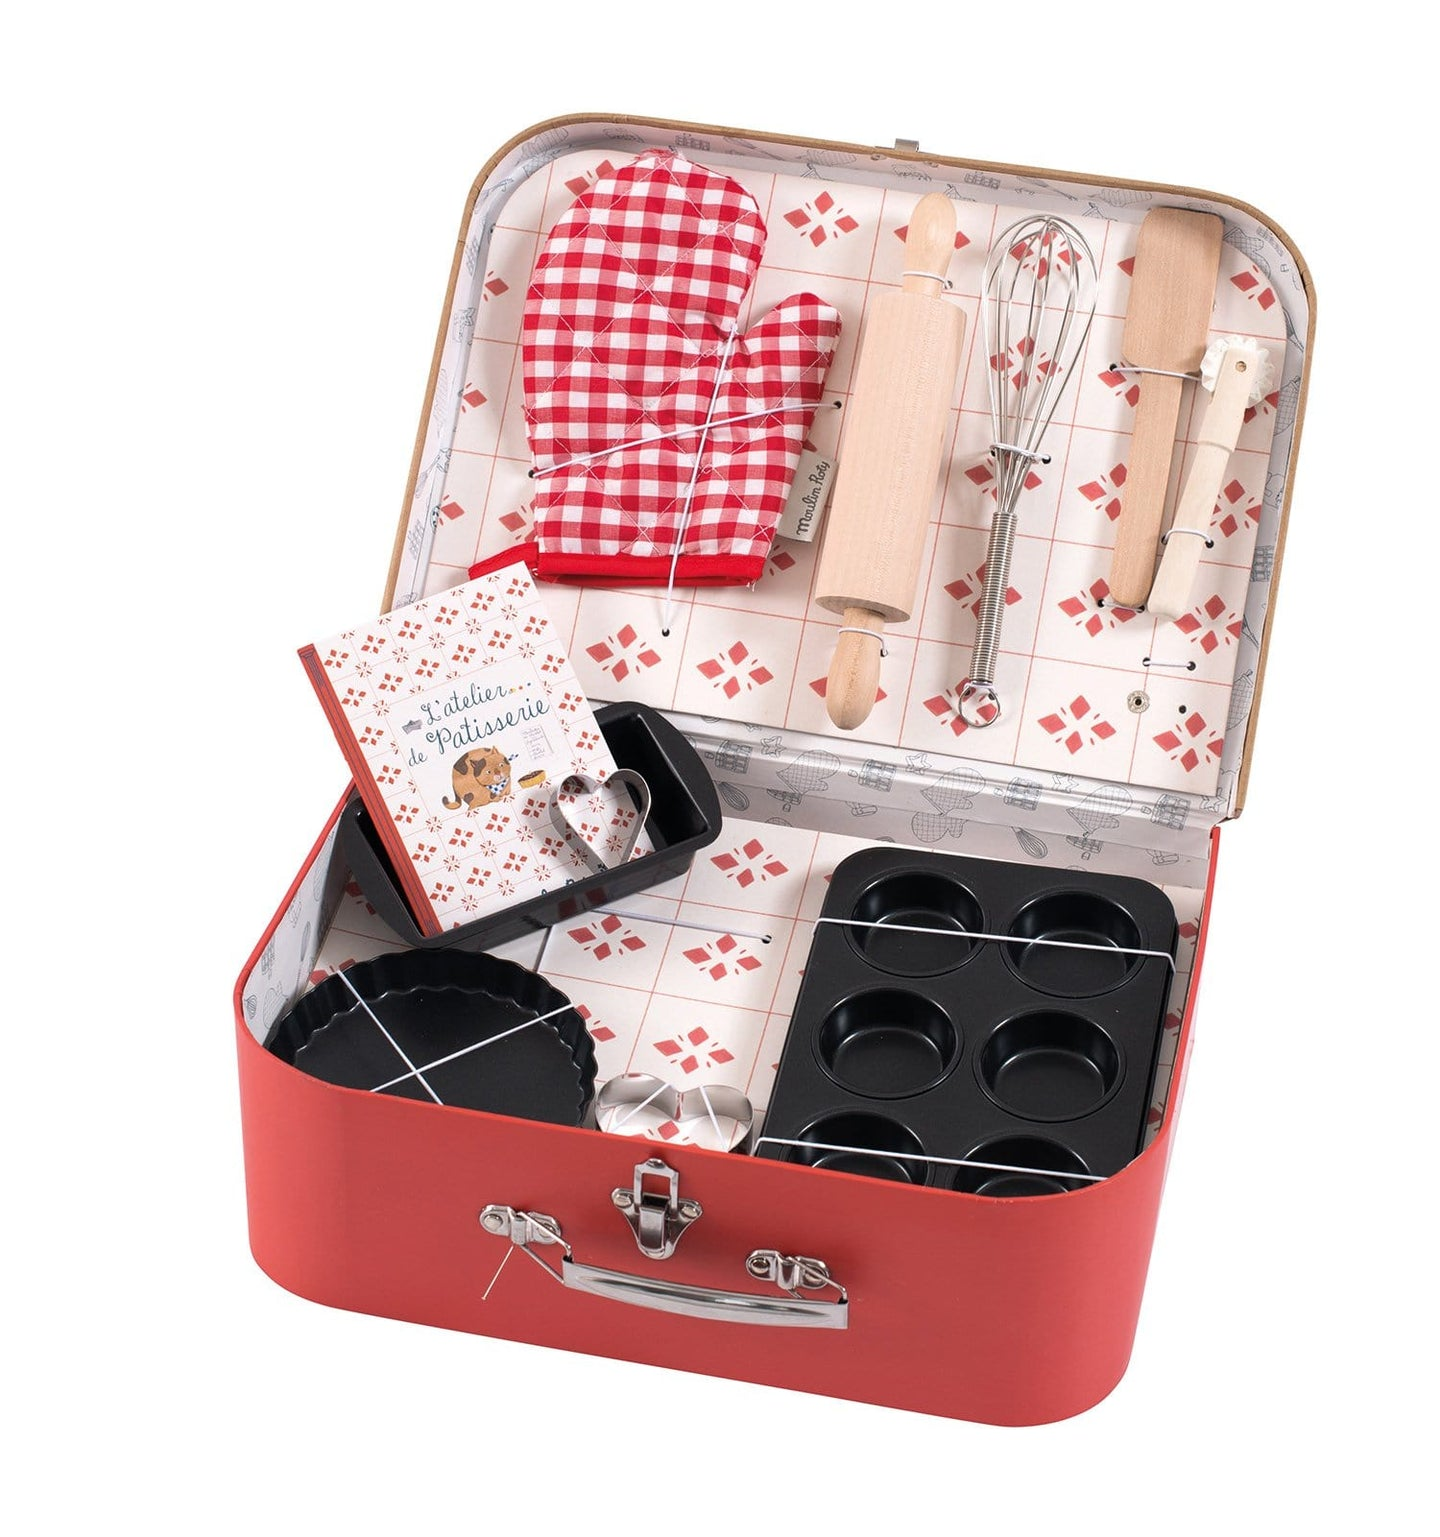 PASTRY COOKING KIT IN ILLUSTRATED VINTAGE-STYLE SUITCASE